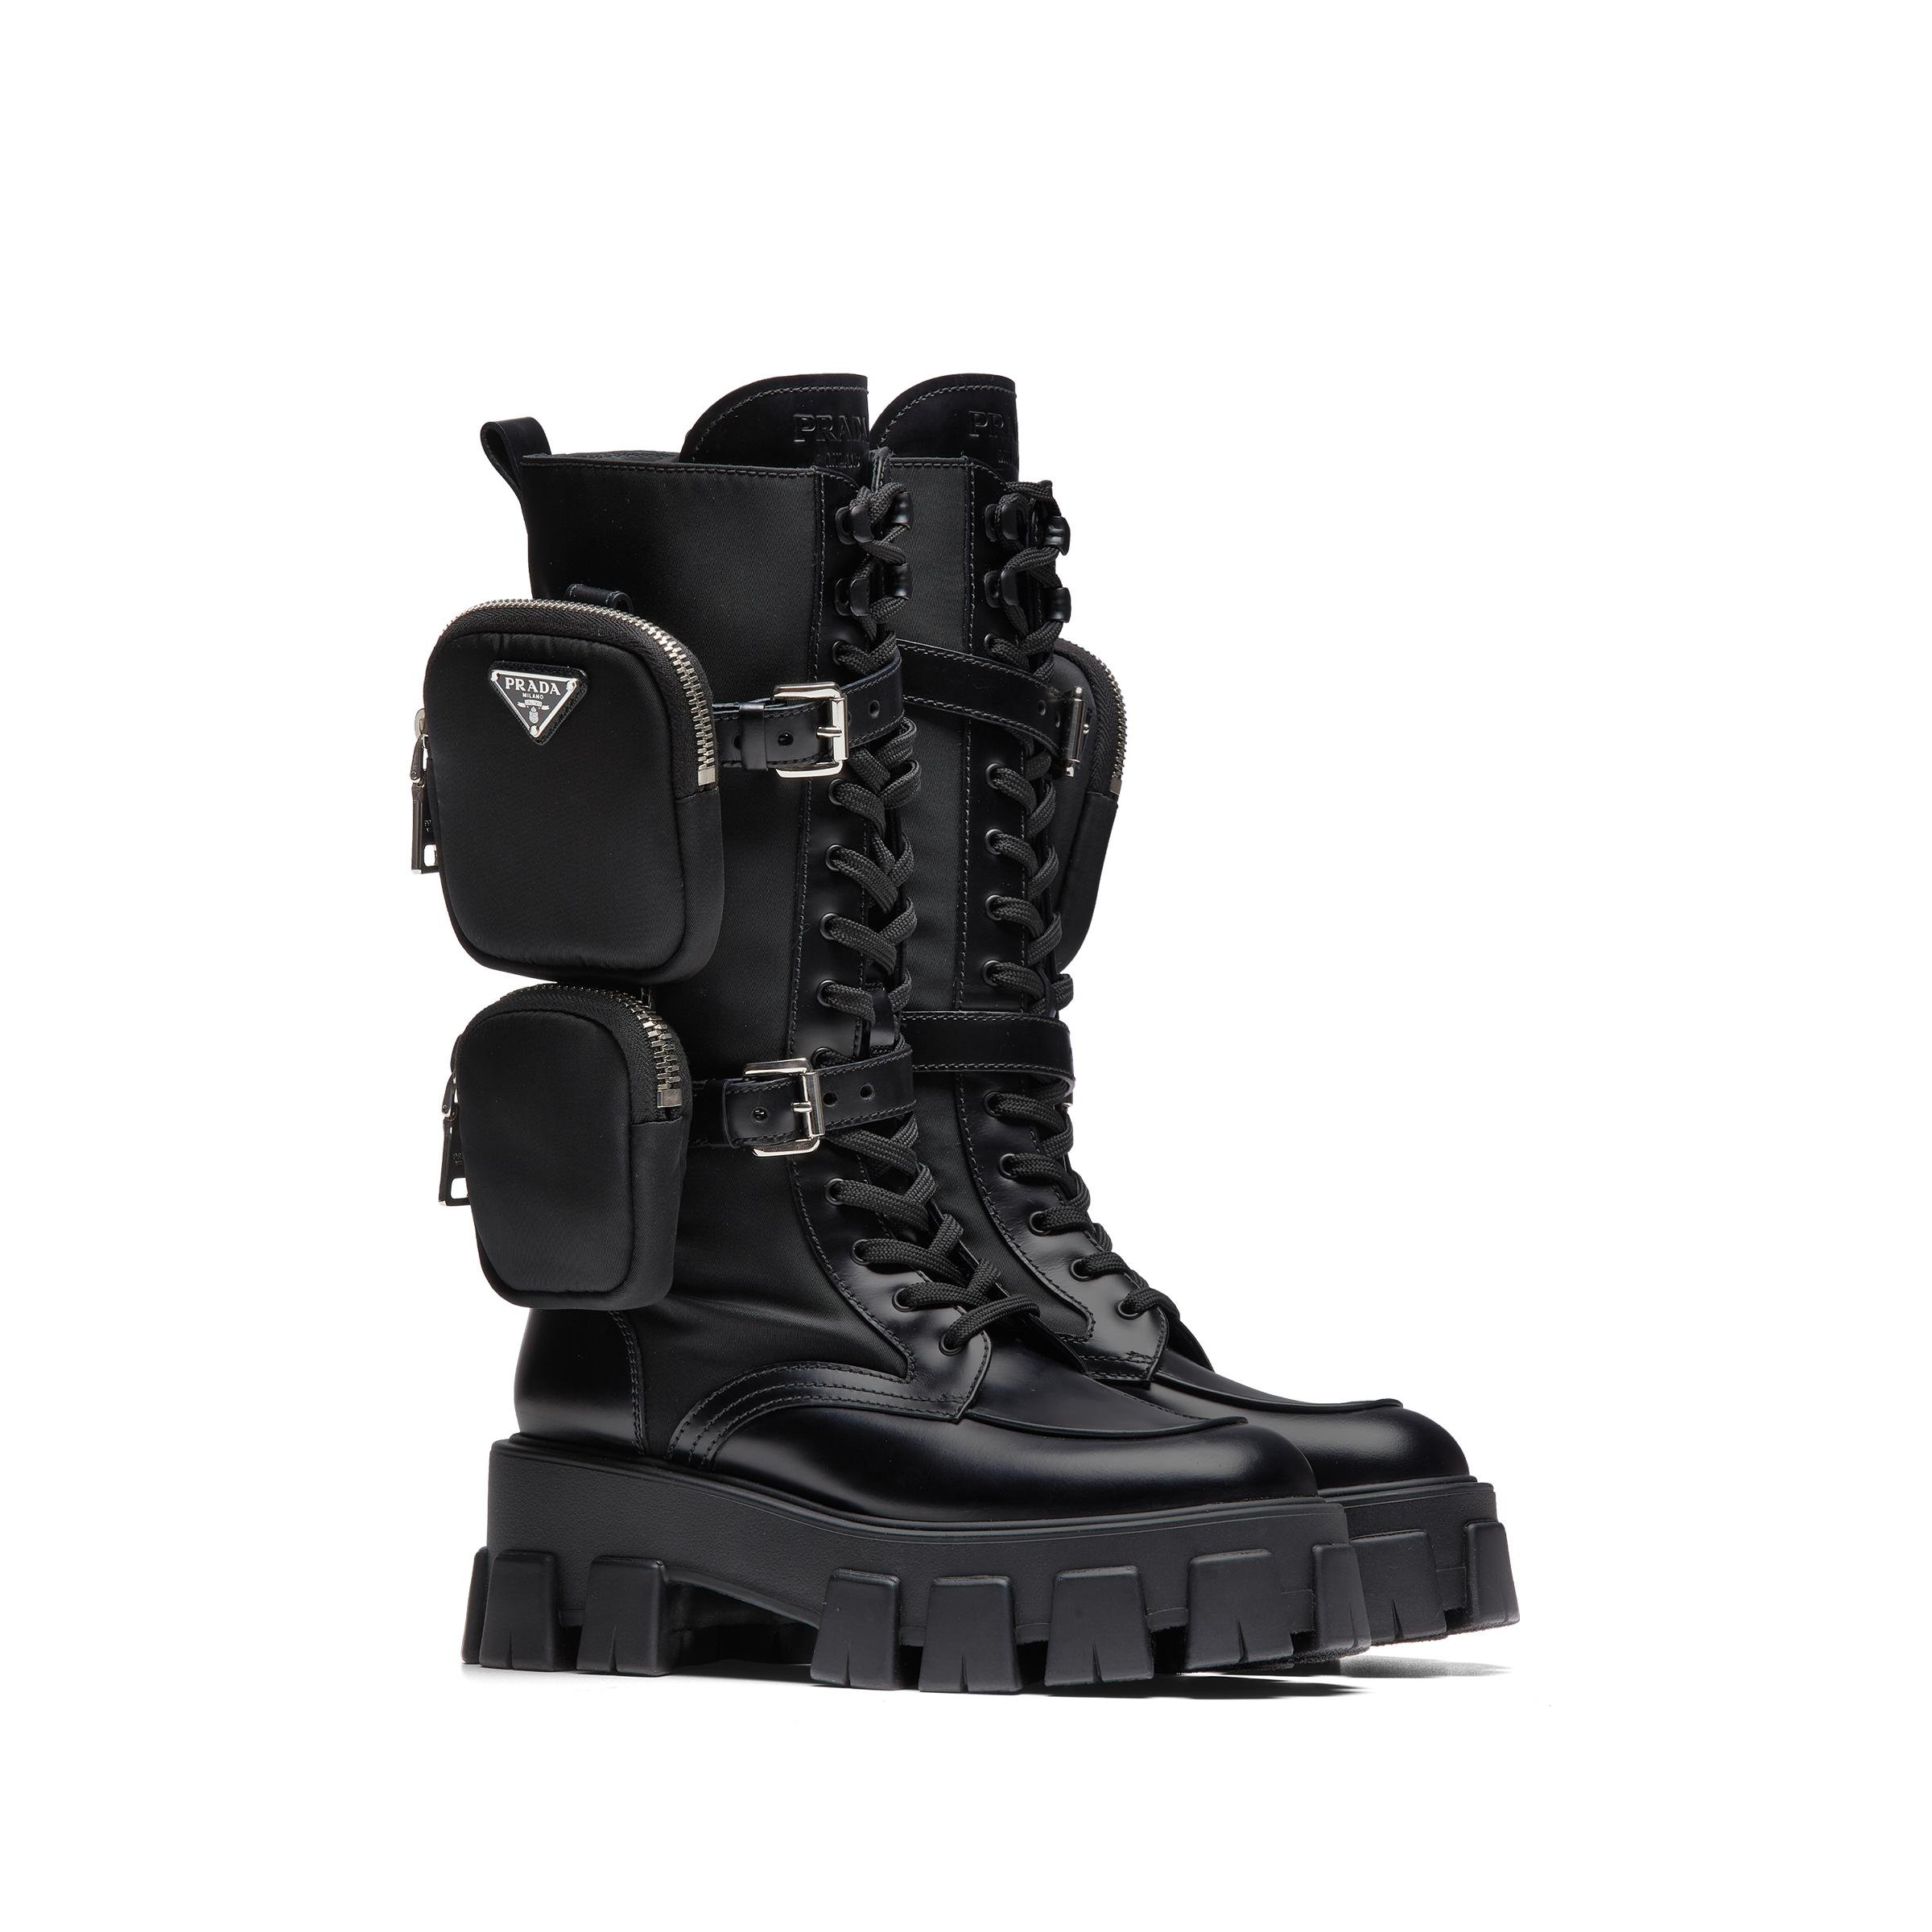 Brushed Rois Leather And Nylon Monolith Boots Women Black